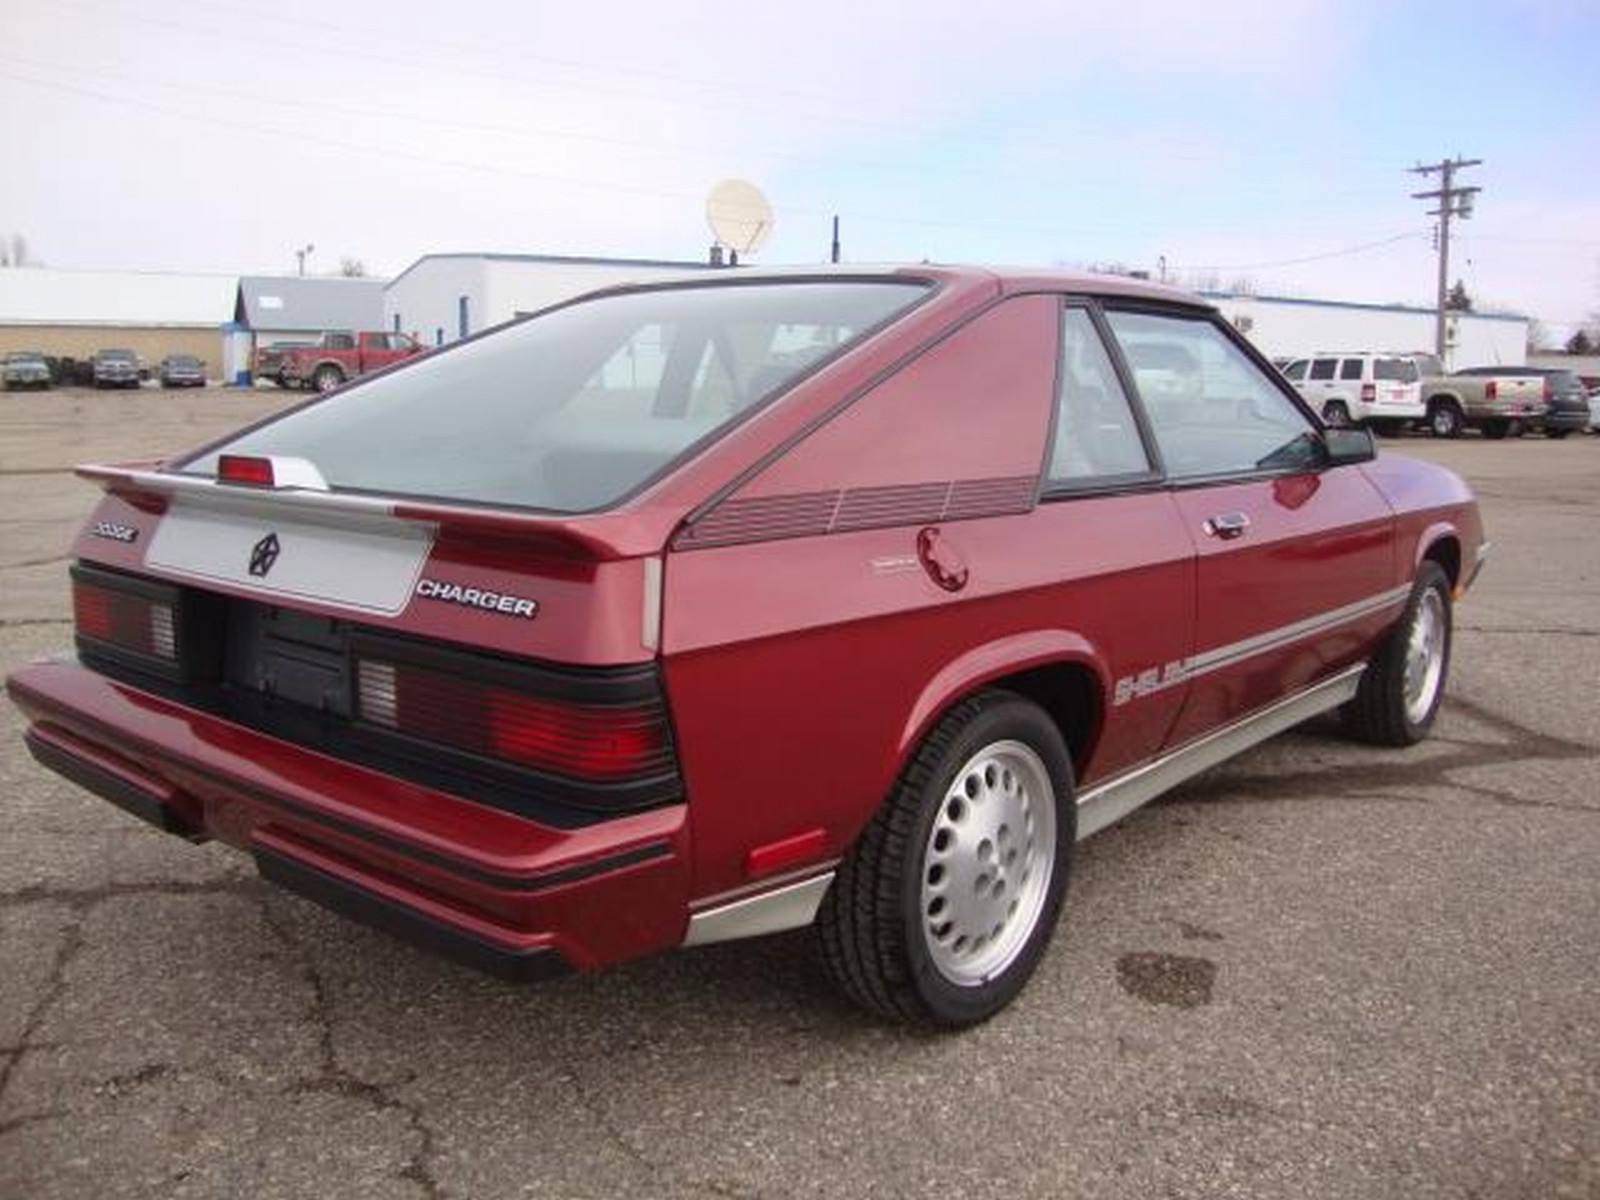 New 1987 Dodge Shelby Charger - Image 7